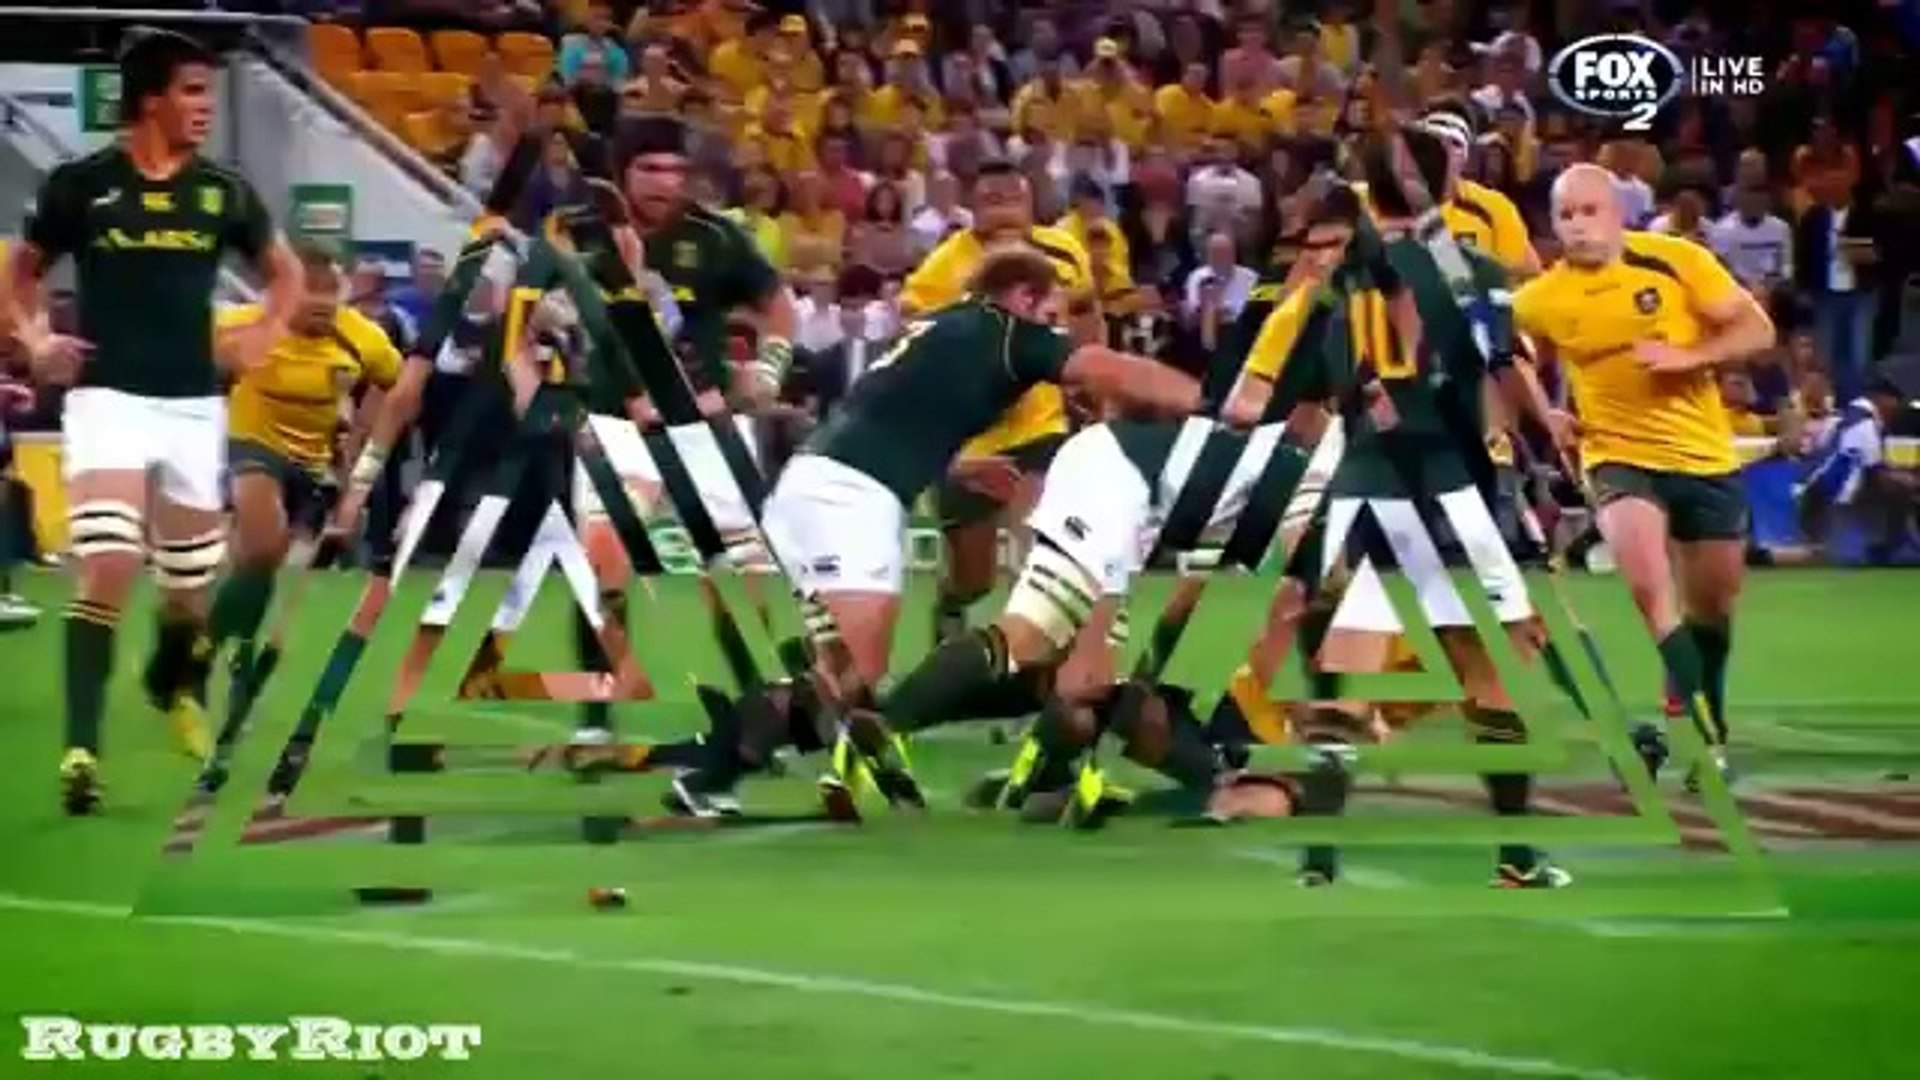 Watch Lions v Force - live Super Rugby - R-15 - super rugby videos - super rugby scores live - super